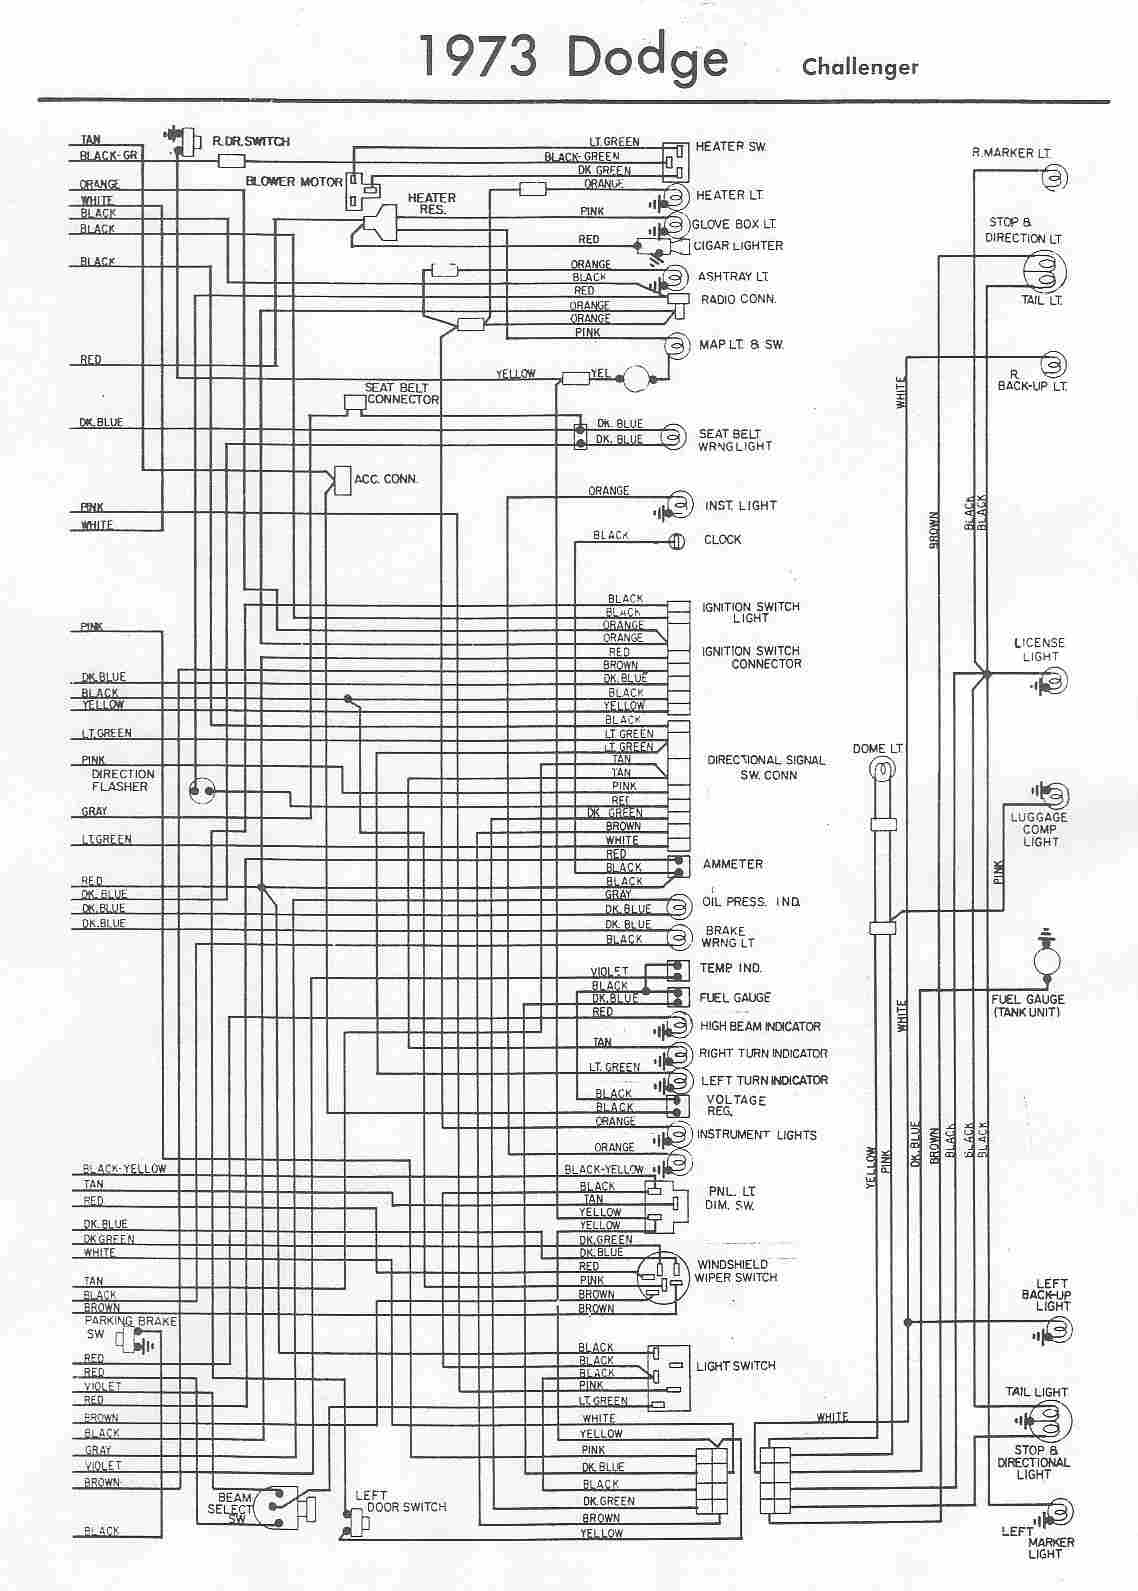 Dodge Car Manuals Wiring Diagrams Pdf Fault Codes 2000 Durango 5 2l Diagram Electrical Of 1973 Challenger